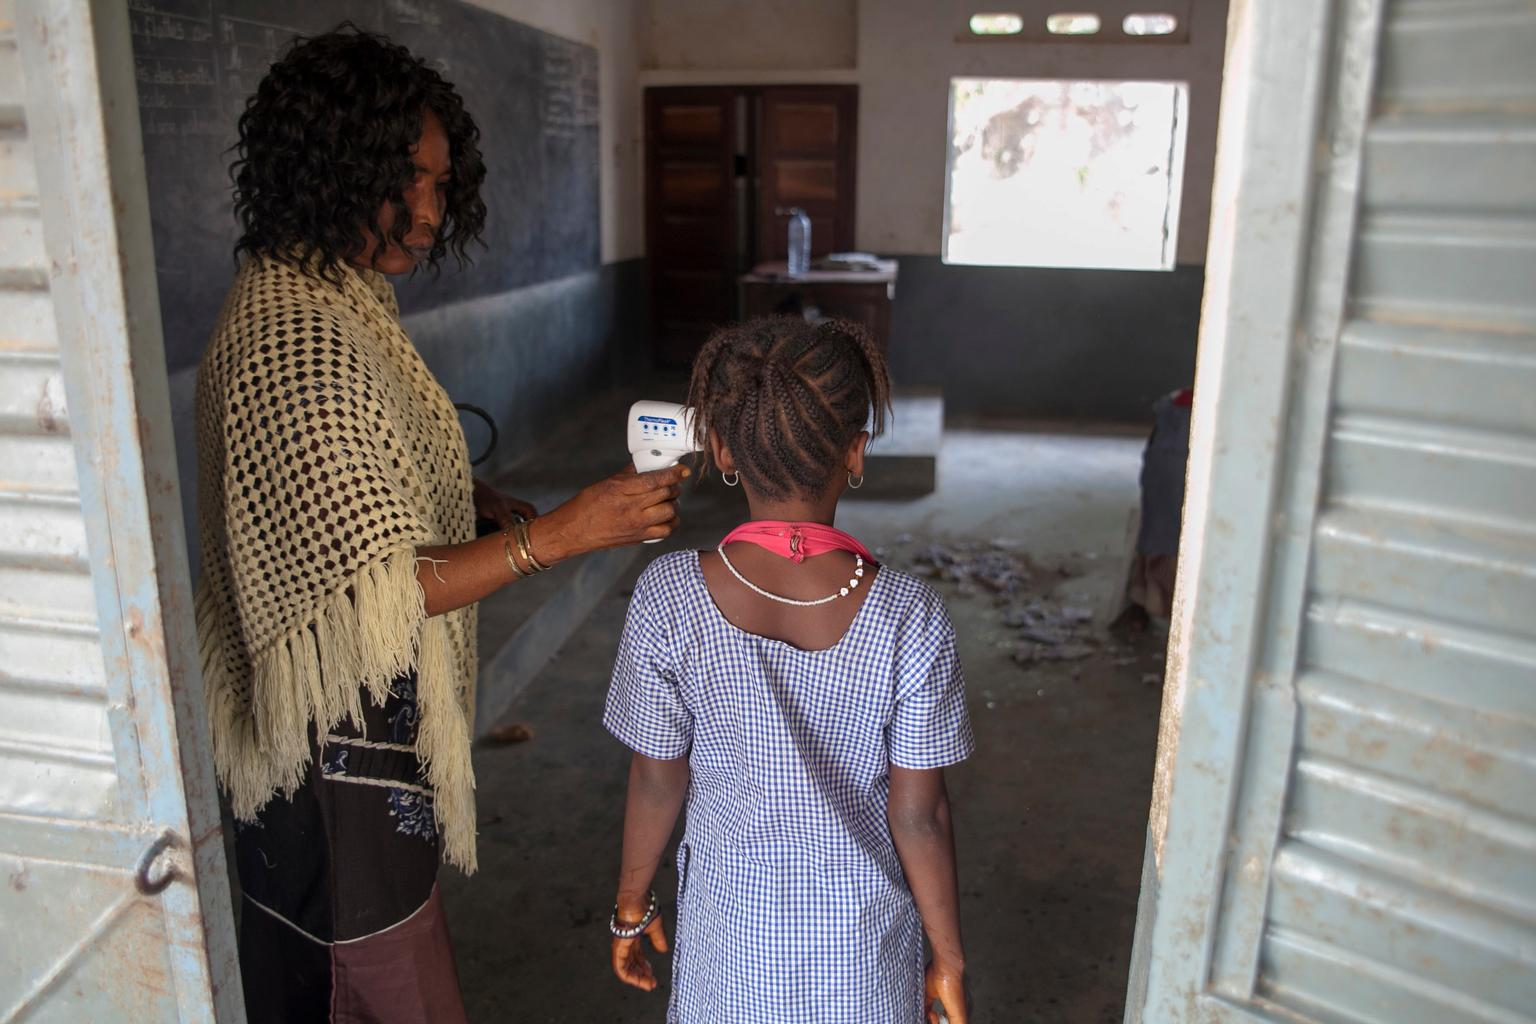 On 11 March 2015 in Guinea, a teacher uses a UNICEF-provided infrared thermometer to take the temperature of a girl as she enters her classroom, at the Mangalla school, in the town of Guéckédou, Guéckédou Prefecture. Because of the Ebola virus disease (EVD) outbreak, schools across the country remained closed after the conclusion of the July-August 2014 holidays and finally reopened on 19 January 2015.  UNICEF and partners have worked to help reduce, as much as possible, the risk of EVD transmission. Efforts have included training teachers to implement safety measures, such as daily temperature screenings, and supplying thermometers and handwashing kits for schools.